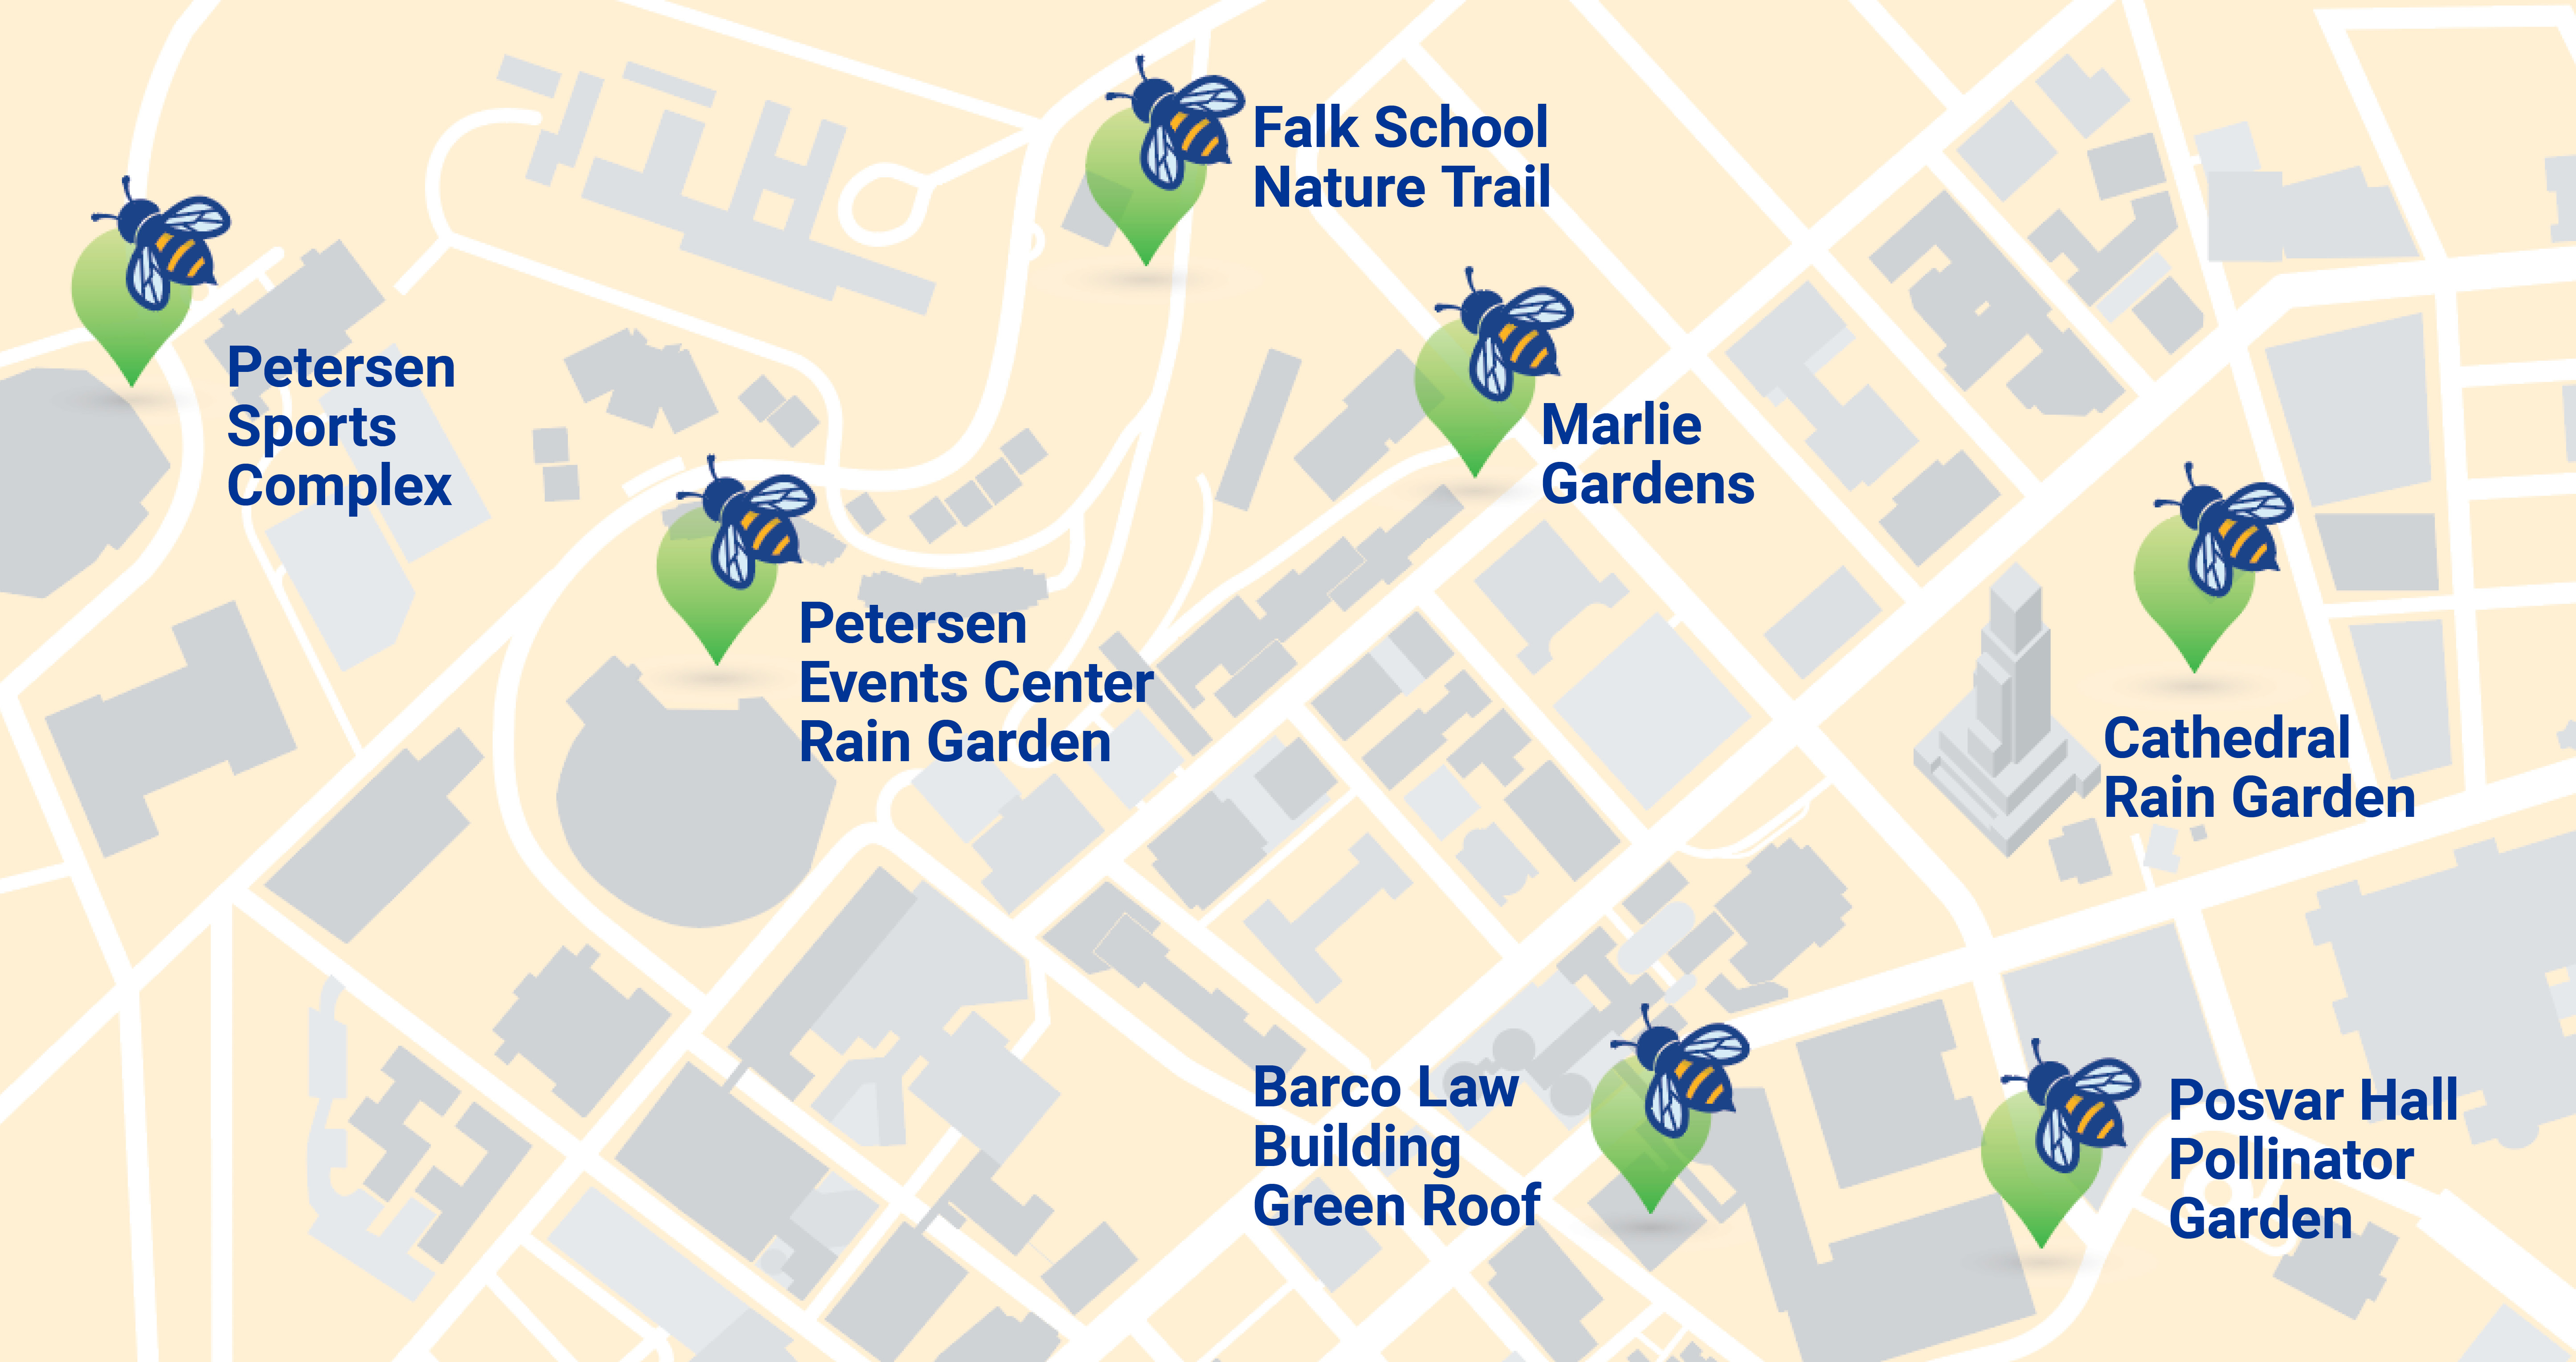 a map of campus with bee icons at the 7 house spots